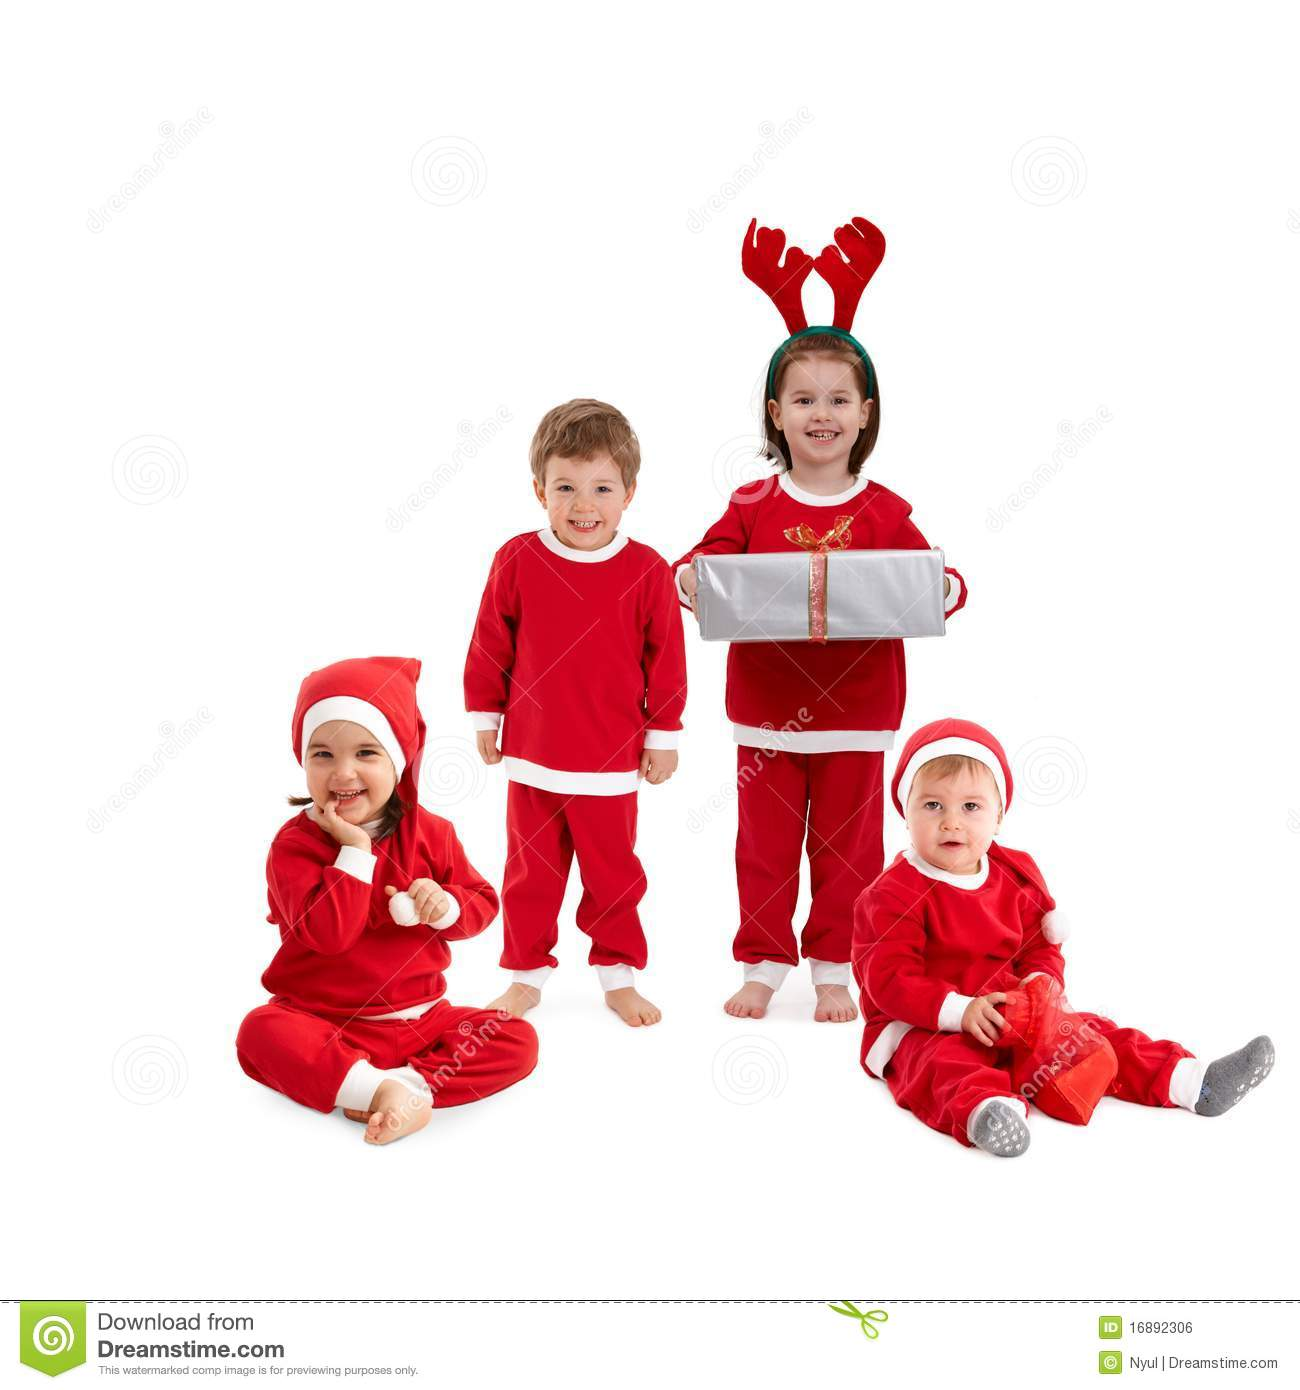 Download comp  sc 1 st  Dreamstime.com & Happy Little Children In Santa Costume Stock Photo - Image of girls ...